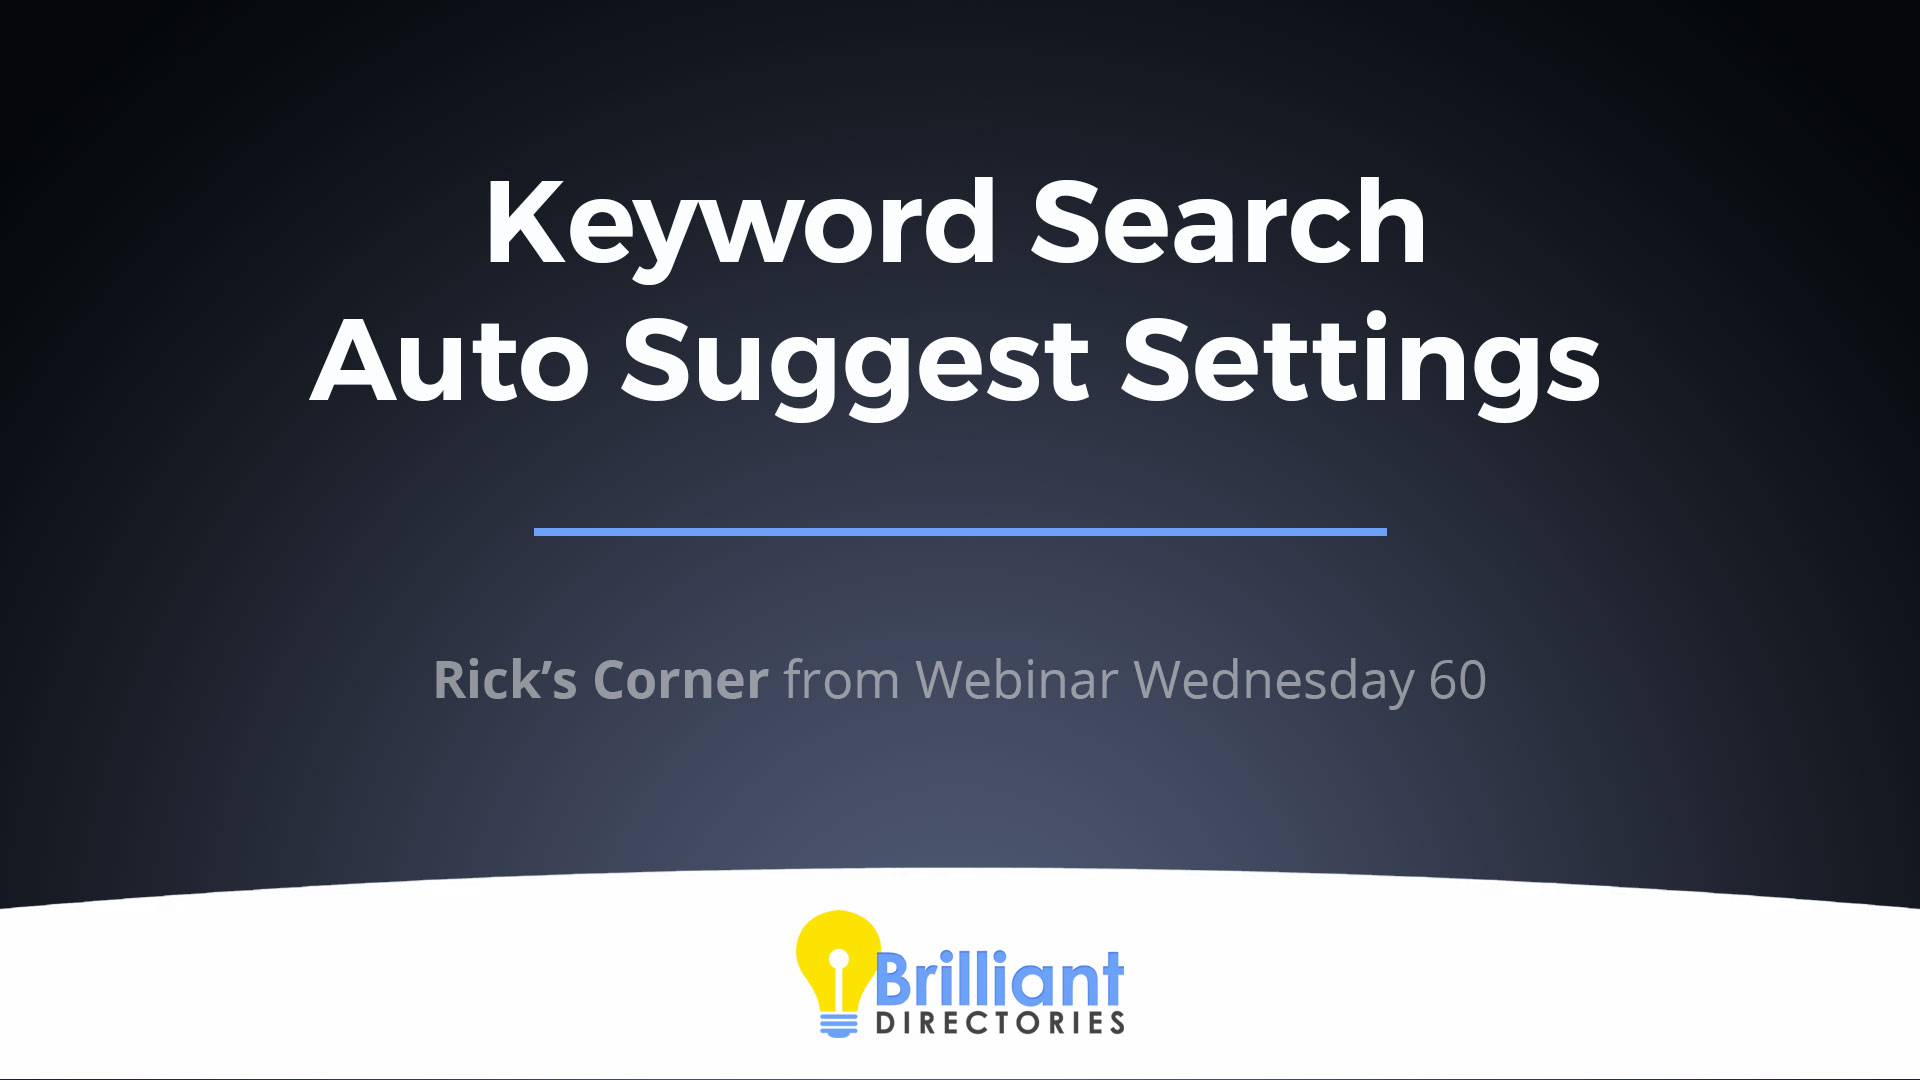 https://www.brilliantdirectories.com/blog/increase-traffic-and-page-views-with-predictive-keyword-searches